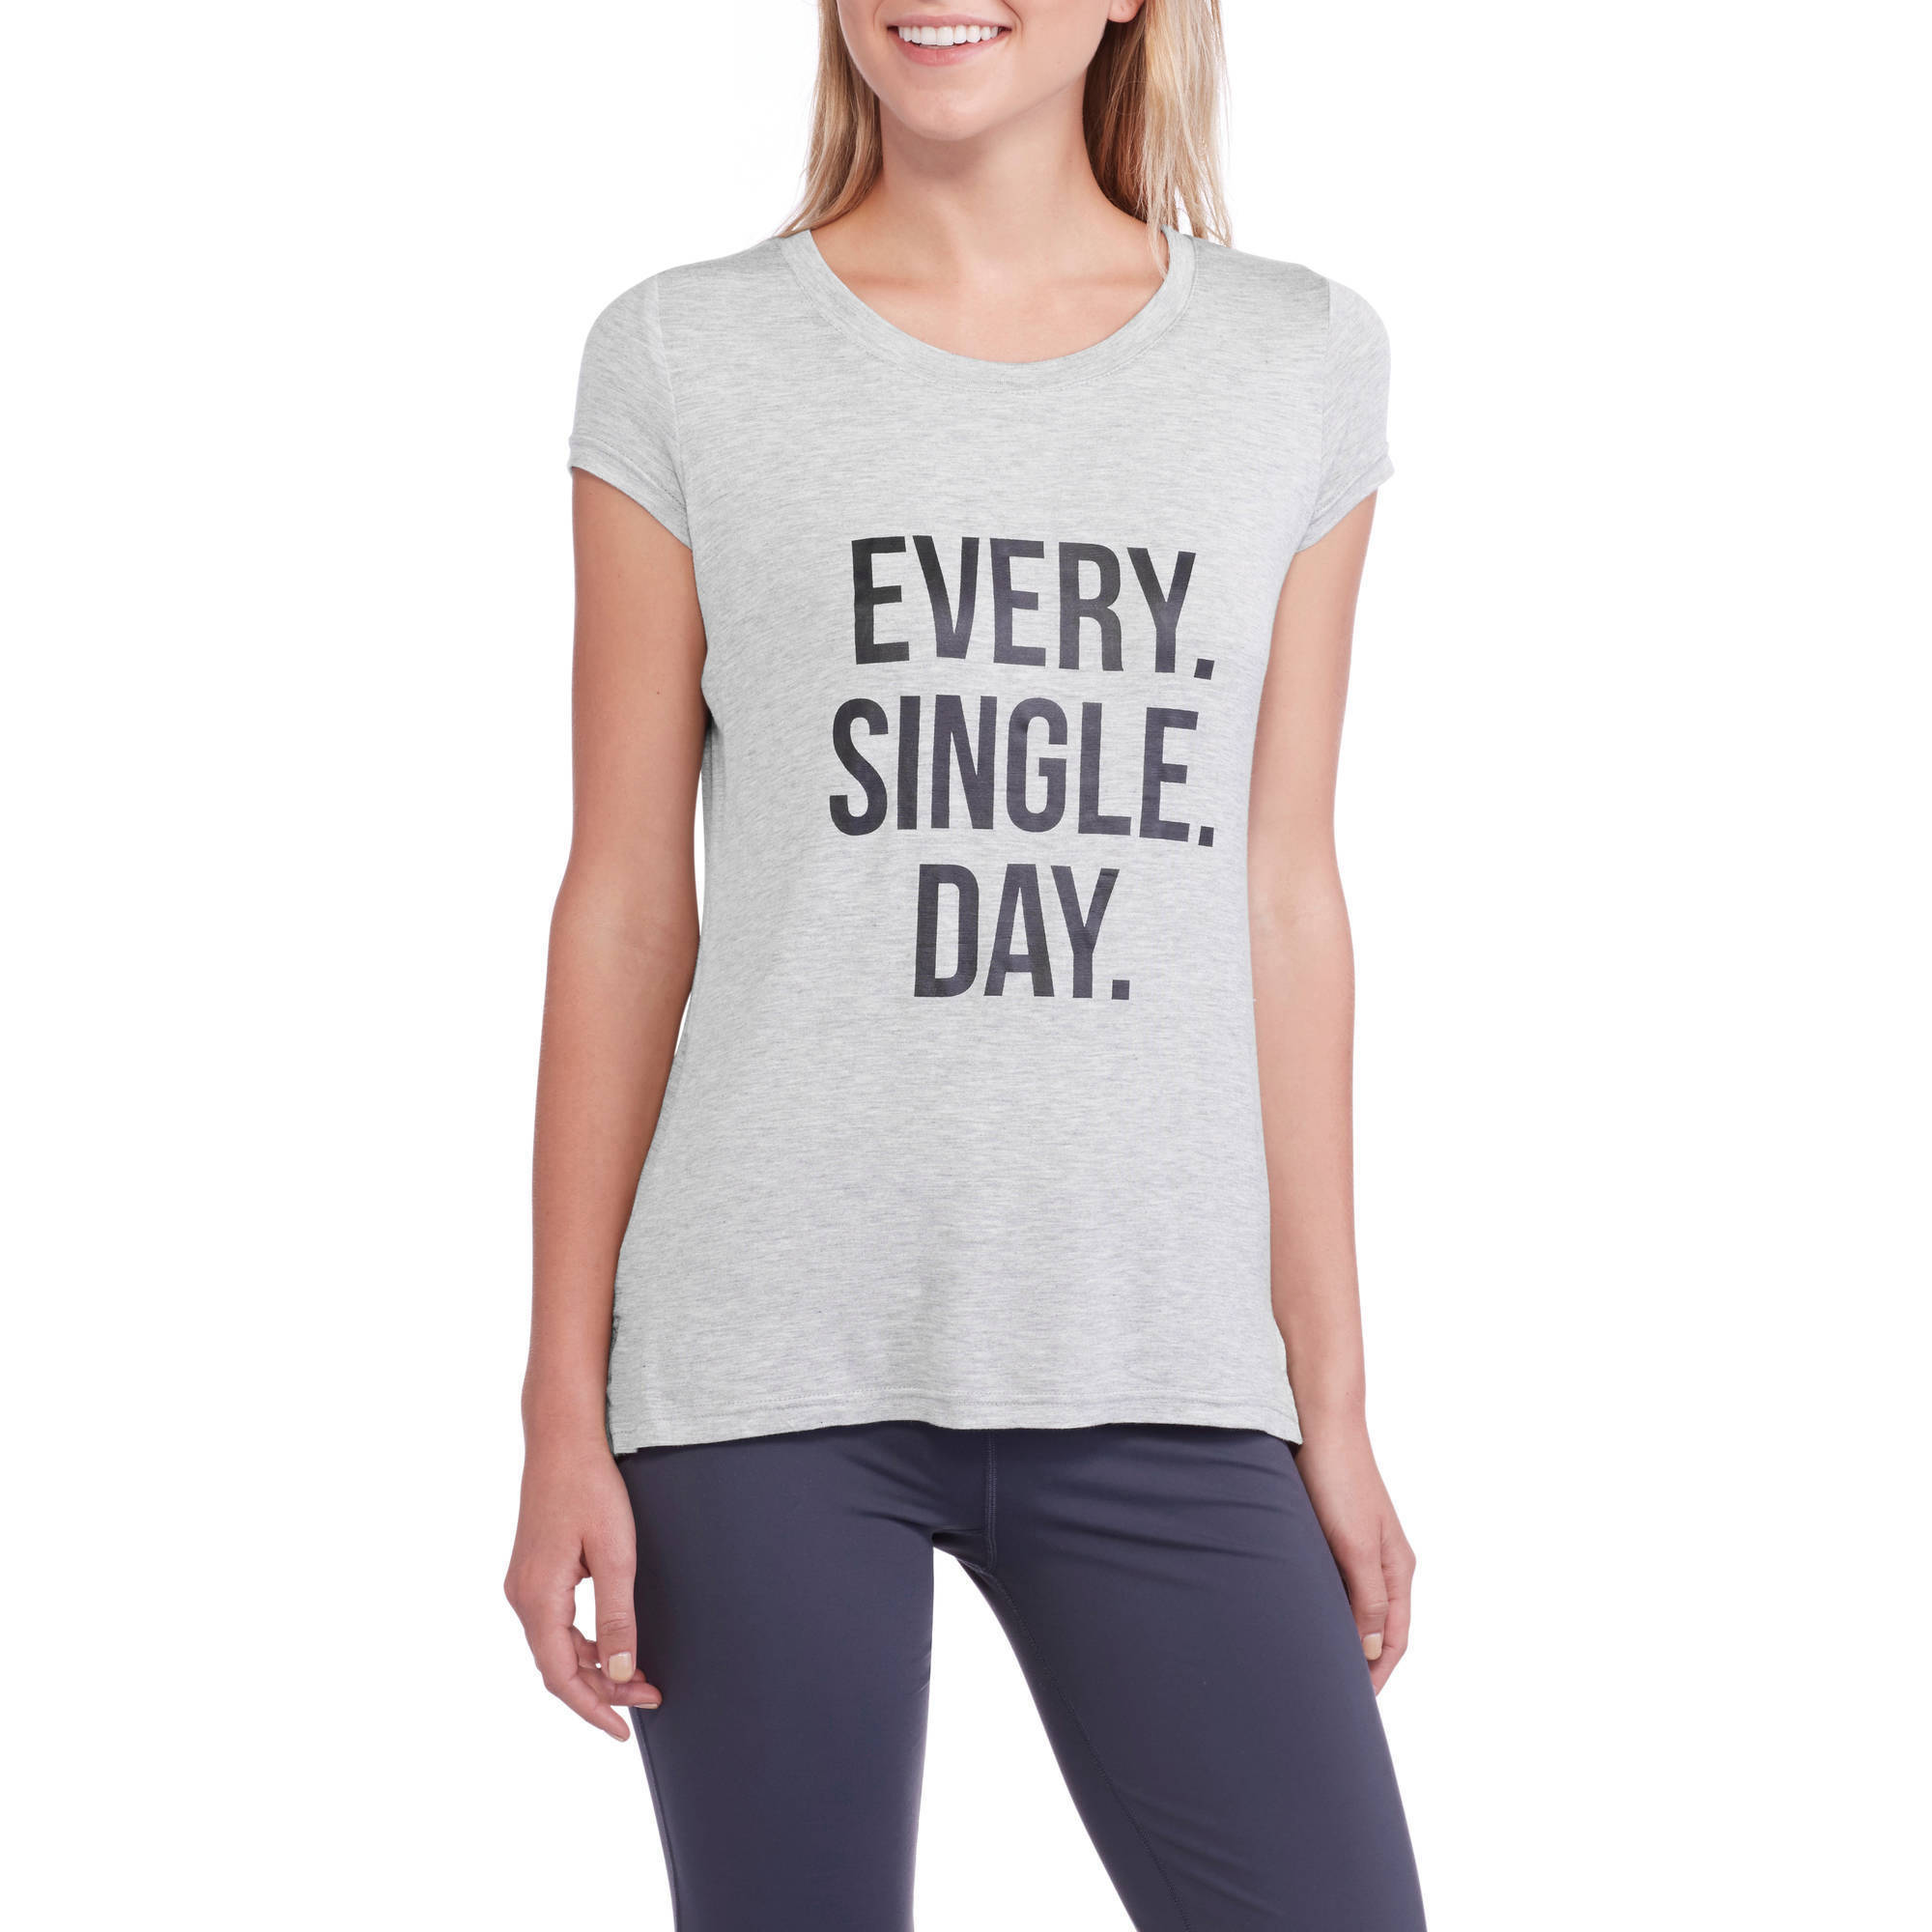 Fitspiration Women's 'Every.Single.Day.' Crew Neck Active Graphic T-Shirt